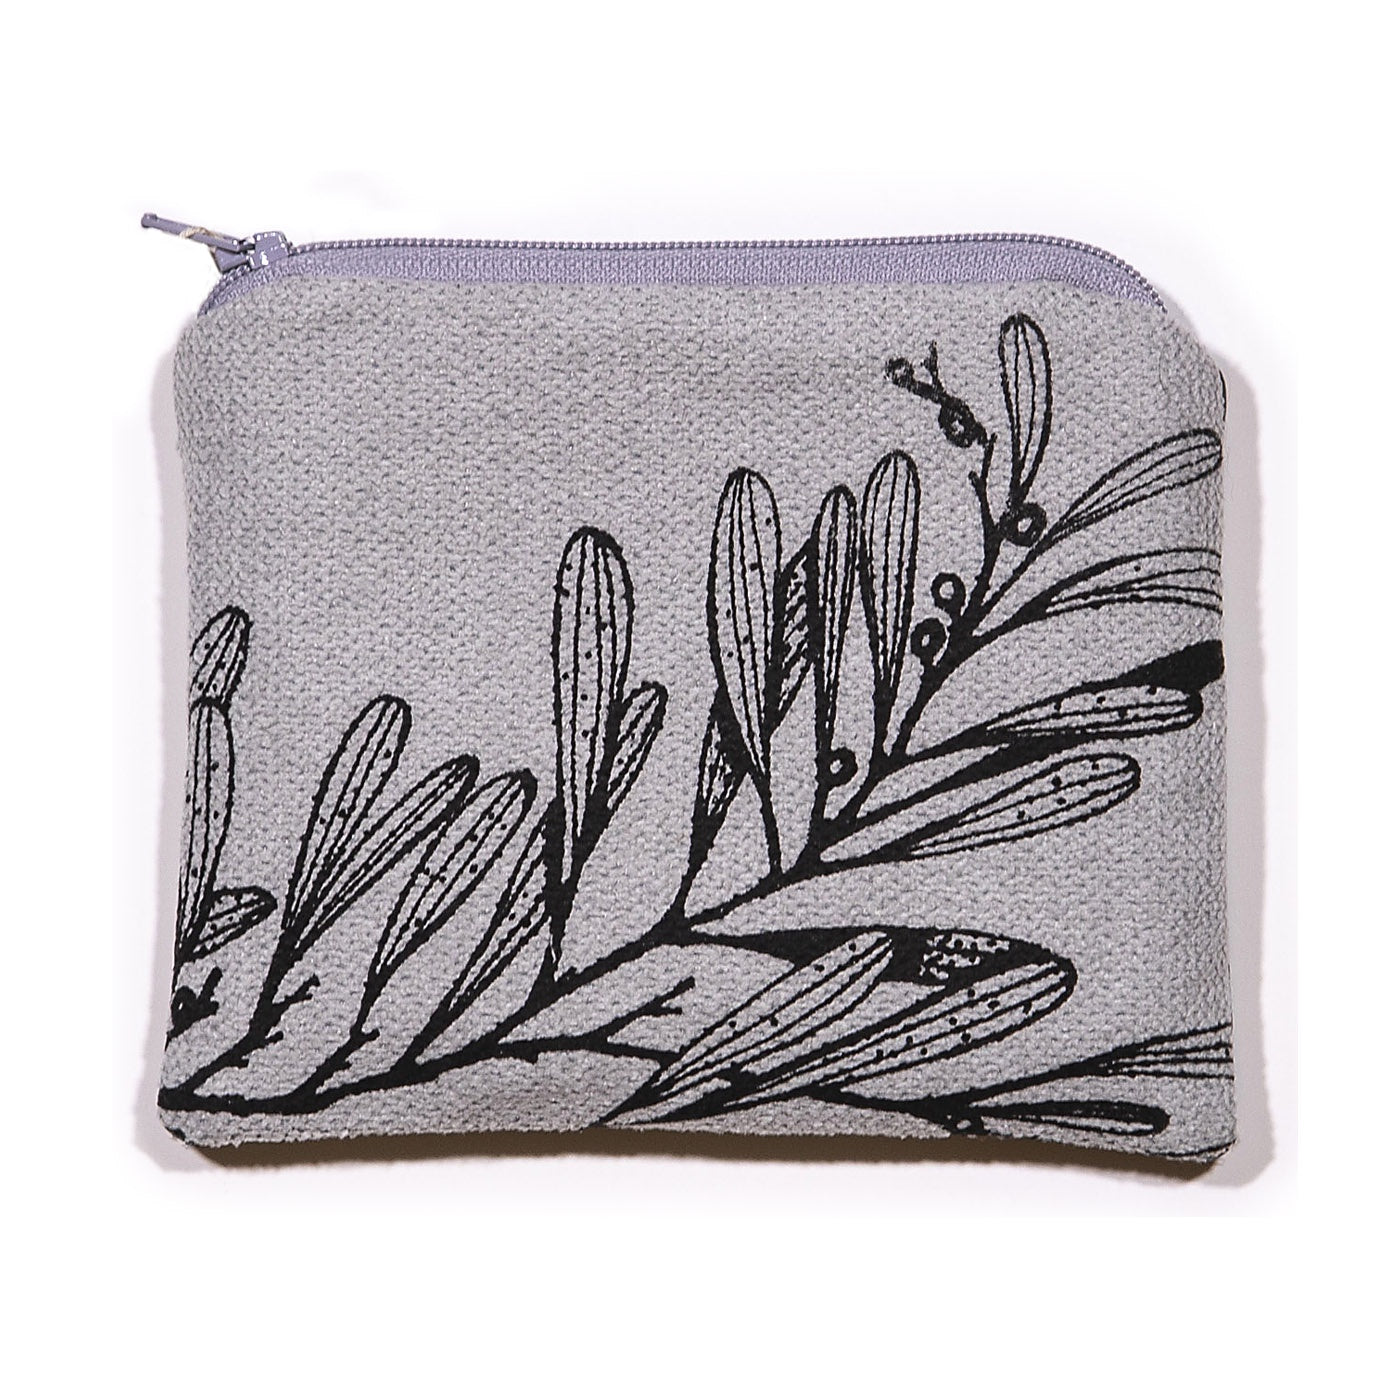 Stalley Textile Co - Zip Purse - Small - Blackwood - Black on Light Grey